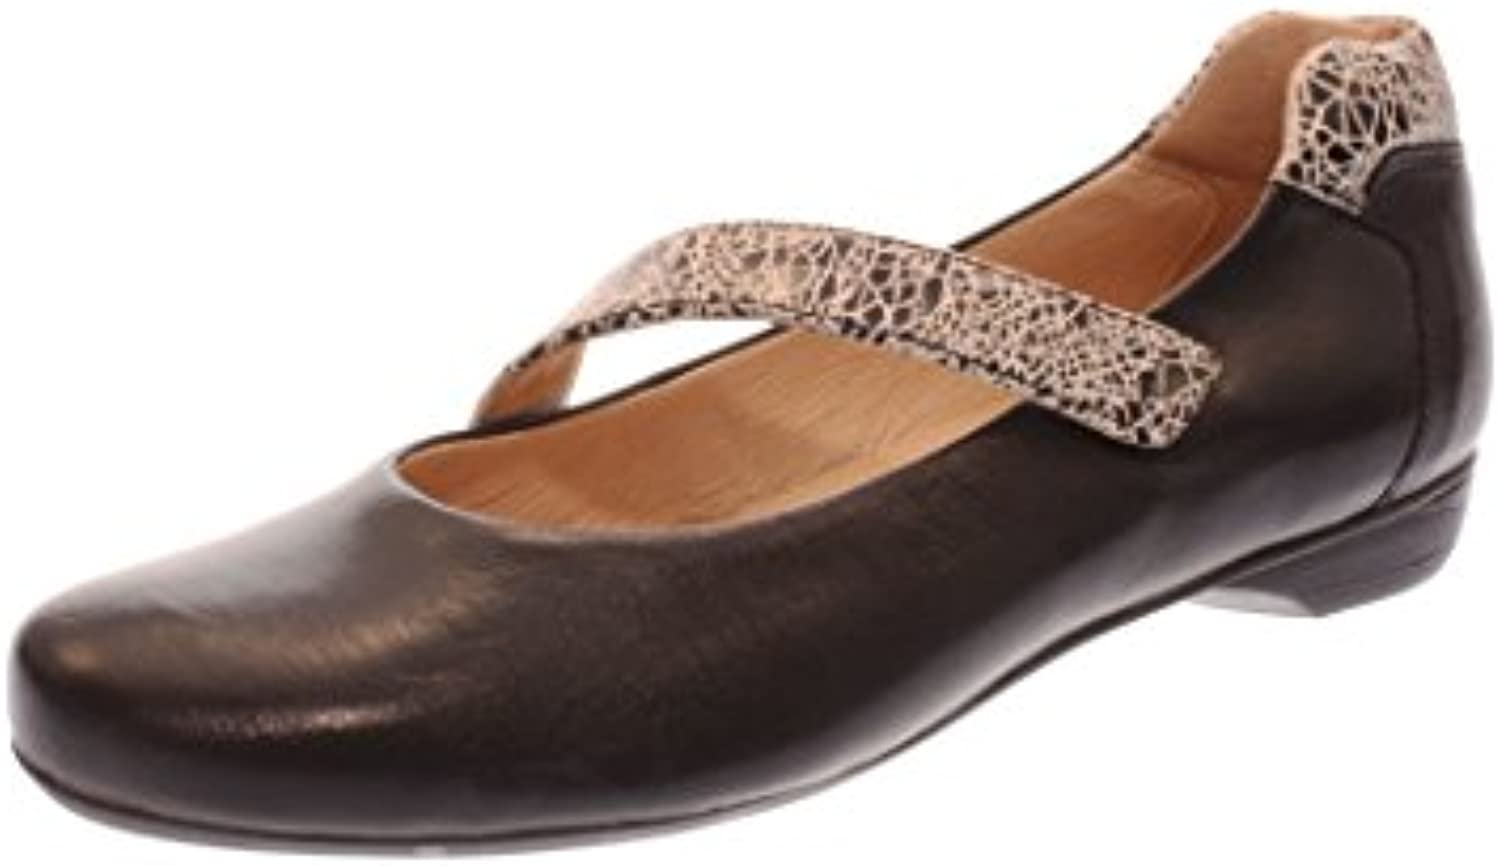 Mujeres Bailarinas lotus black crackle lotus black crackle 6.21.37